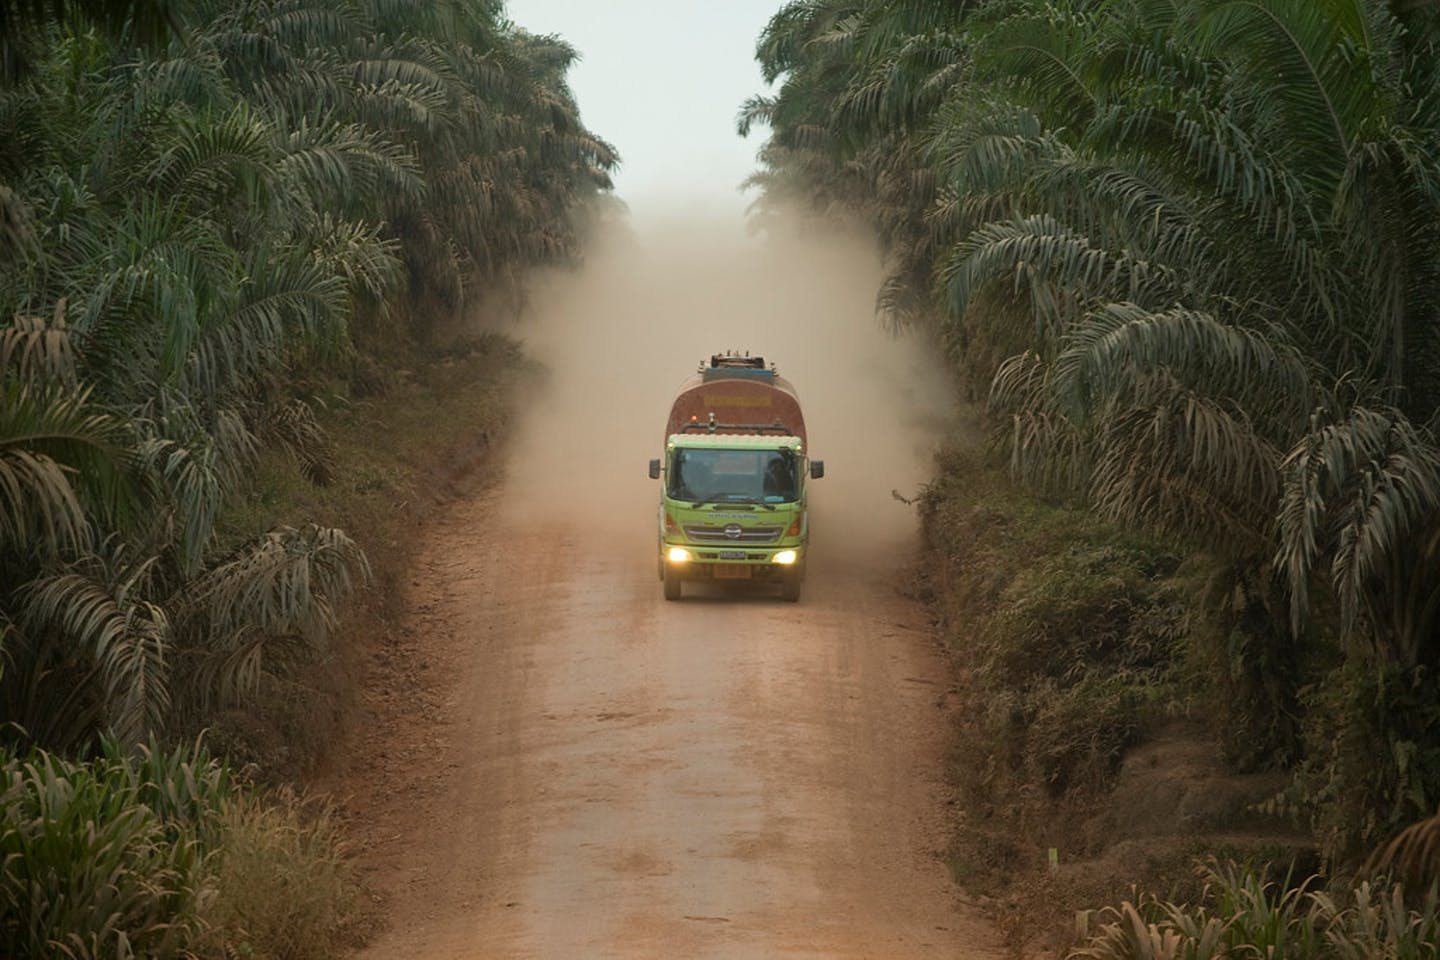 harapan forest indonesia palm oil